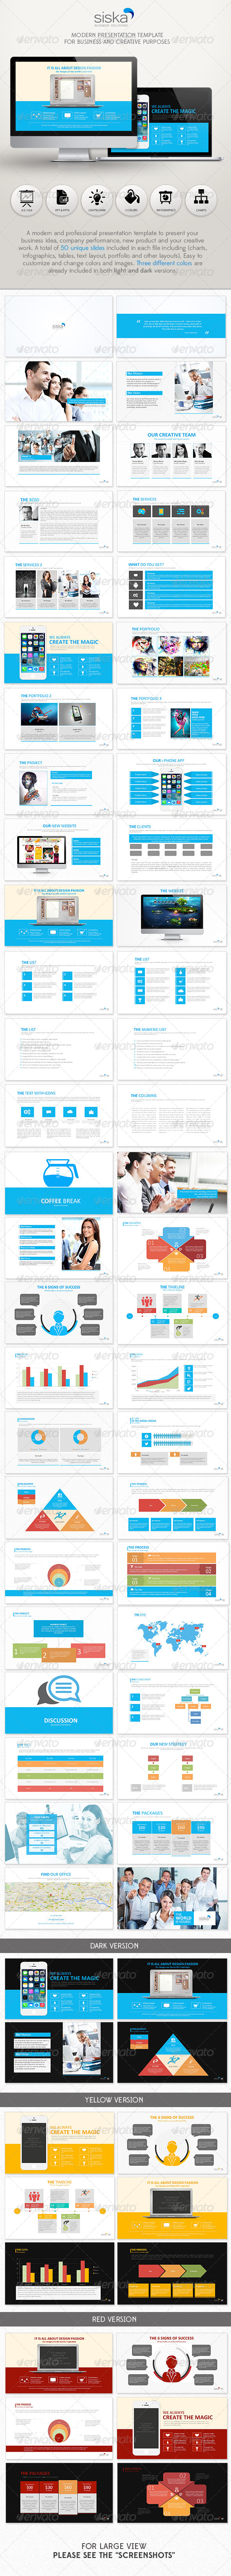 GraphicRiver Siska Powerpoint Presentation Template 6840020